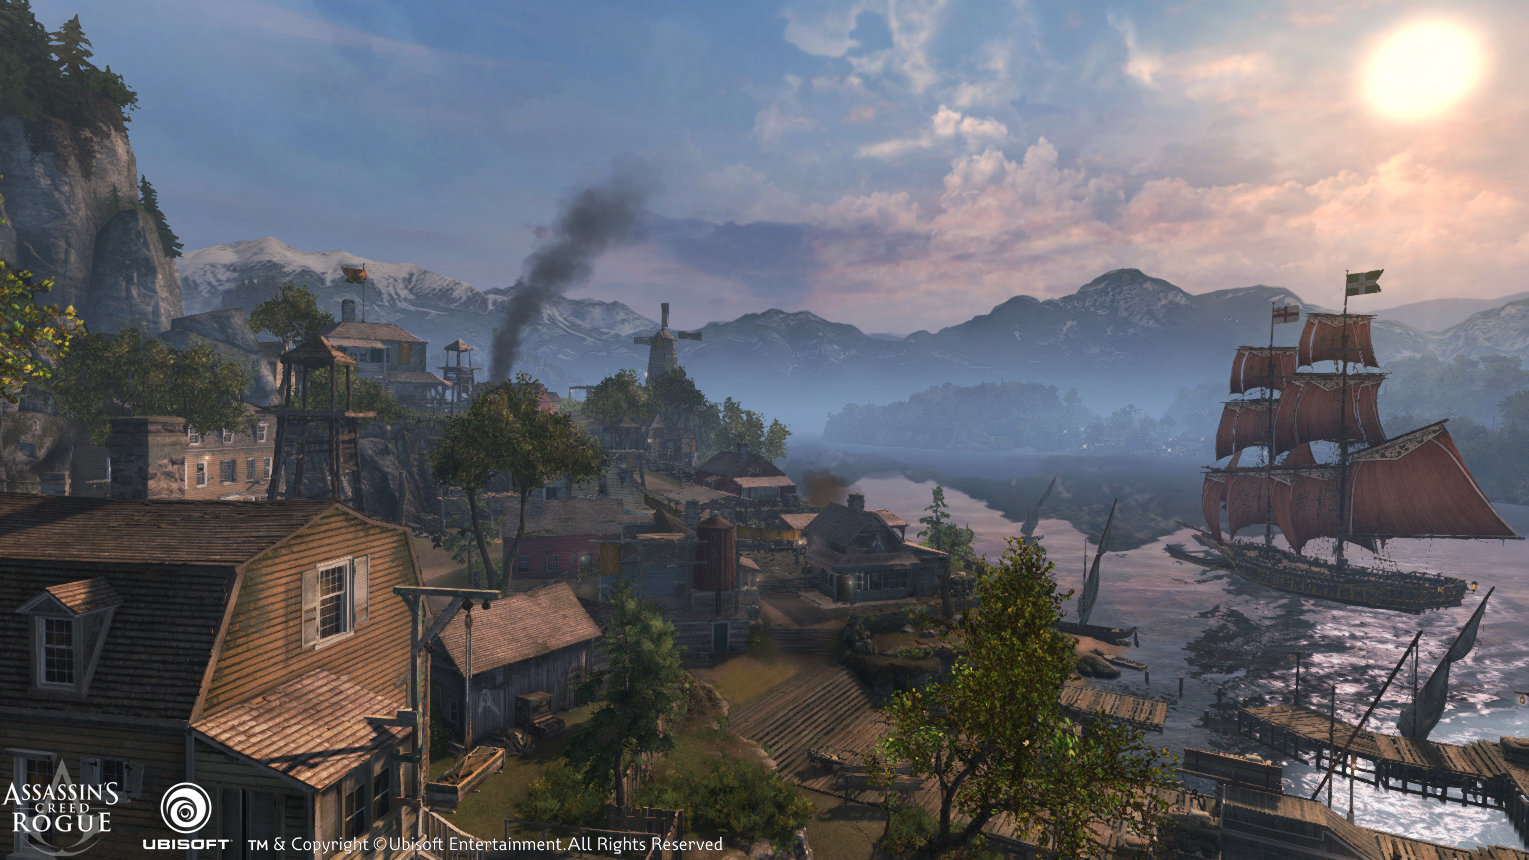 Assassin's Creed Rogue : River Valey's Two Bends HQ